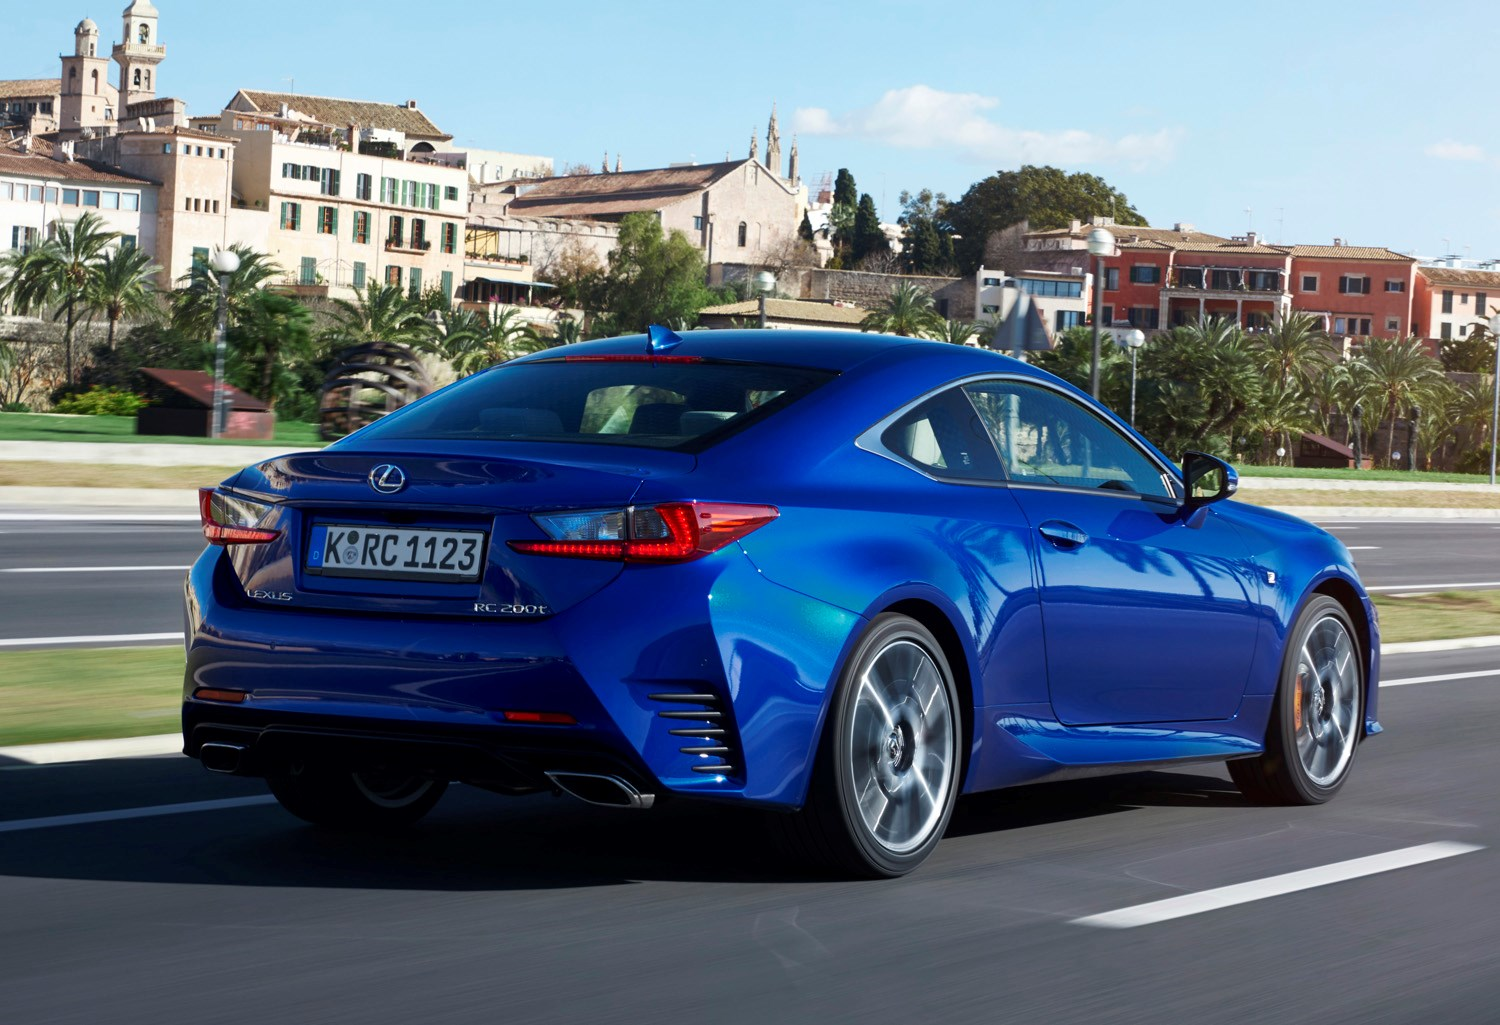 Lexus Rc Coupe Review Driving And Performance Parkers